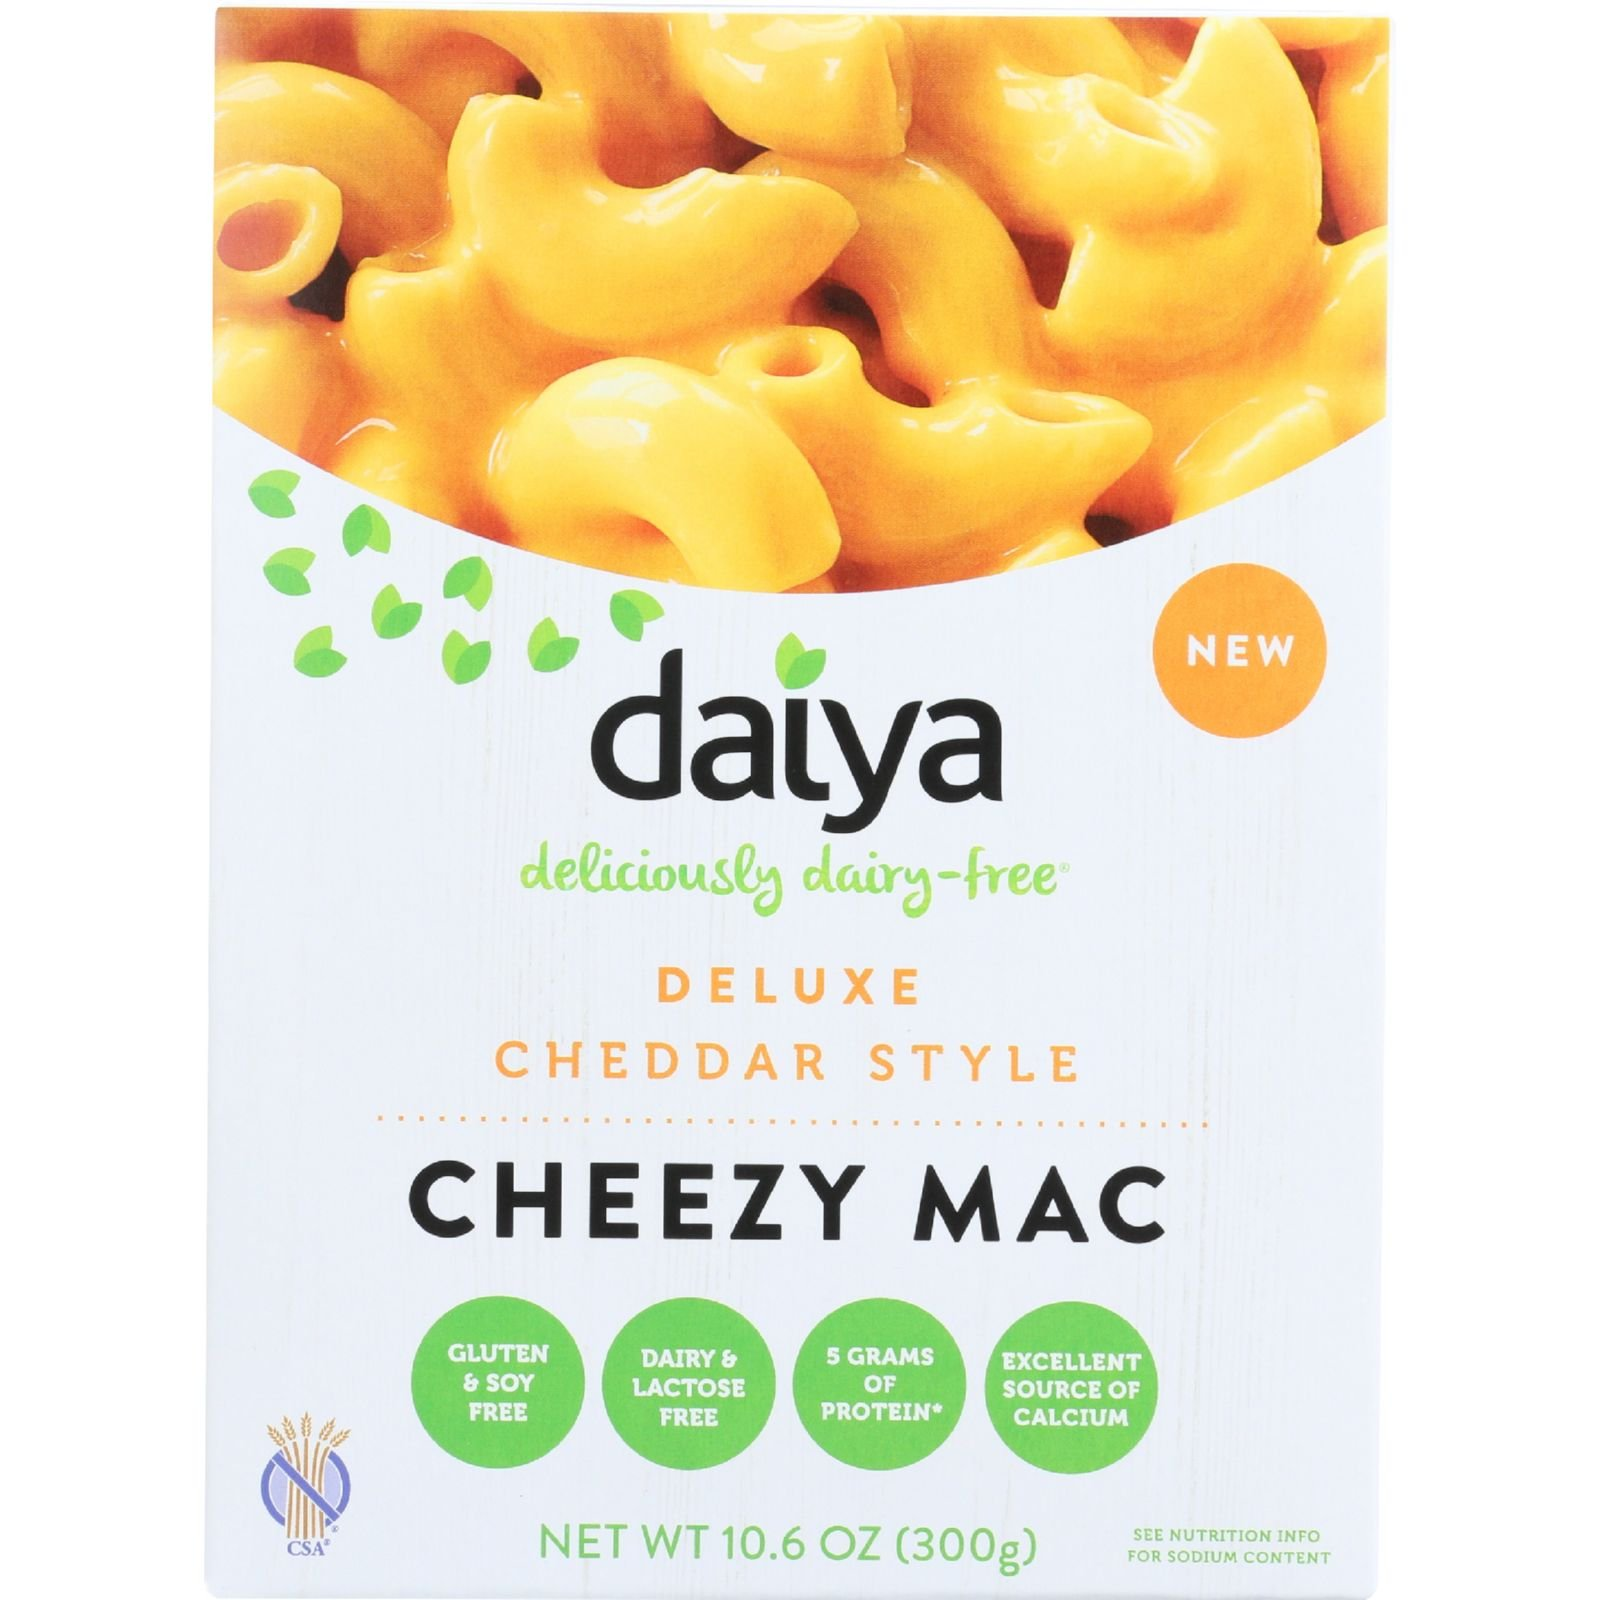 Daiya Foods Inc Cheezy Mac - Deluxe - Cheddar Style - 10.6 oz - case of 8 - Gluten Free - Dairy Free - Wheat Free-Vegan by Daiya